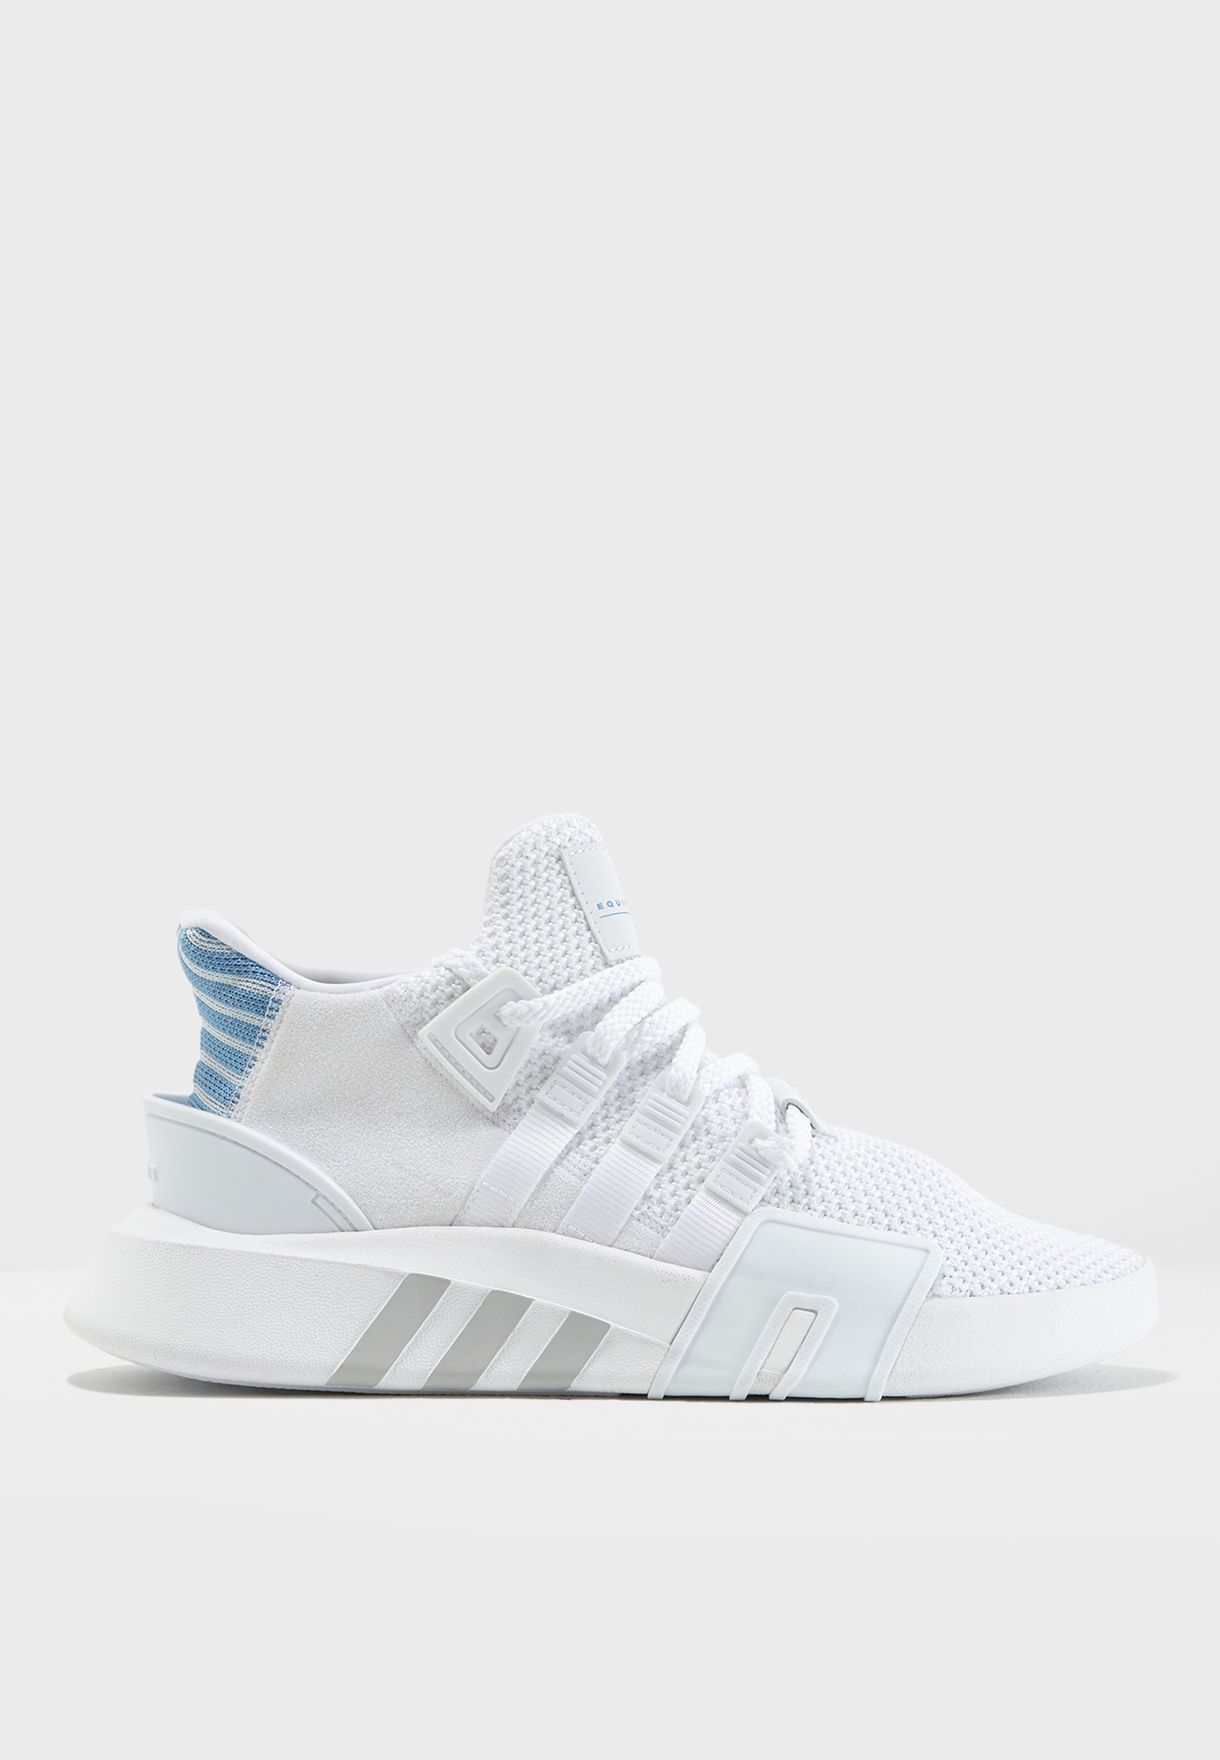 Shop adidas Originals white EQT Bask ADV AC7354 for Women in UAE ... 50f249f3e